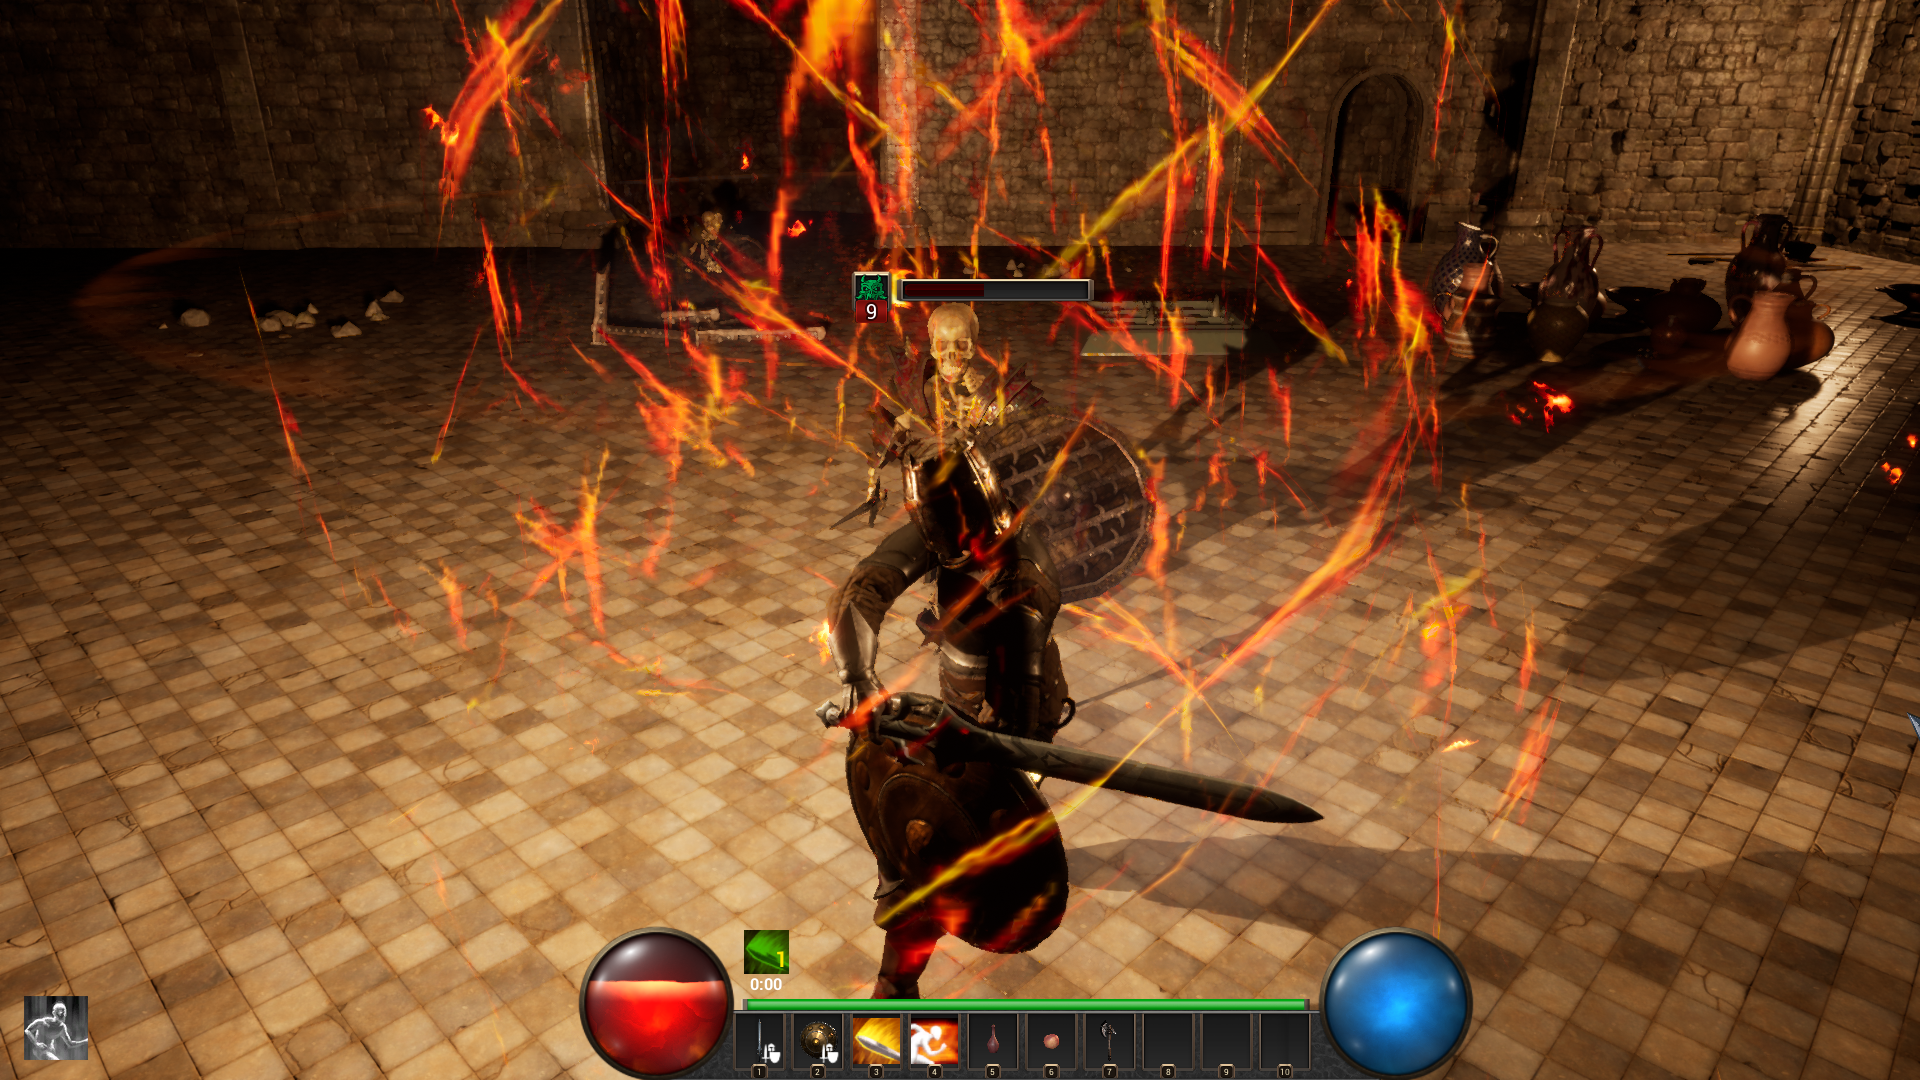 Screenshot of combat